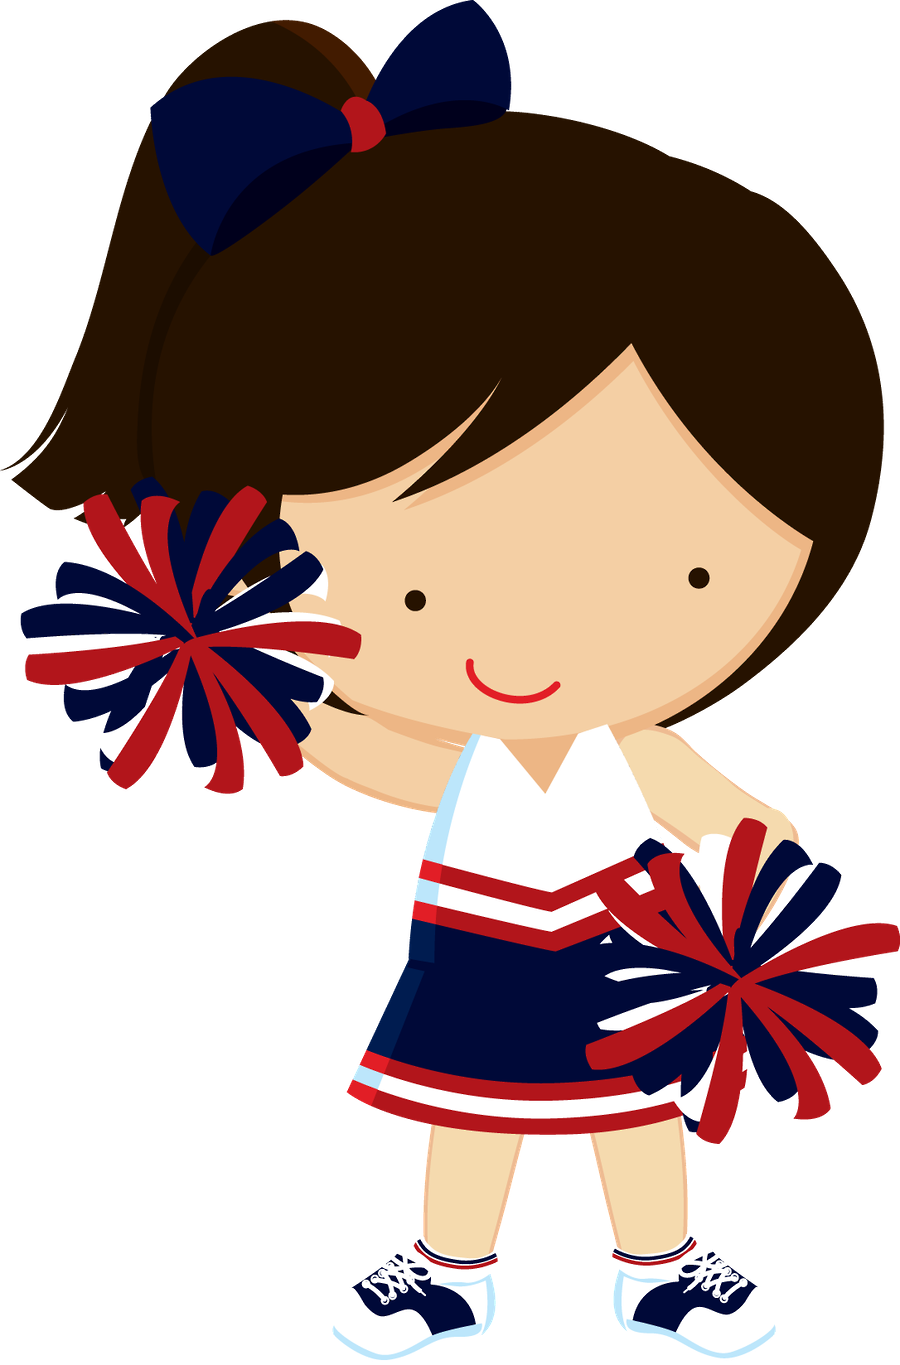 Christmas cheerleader clipart royalty free library Lider torcida - Minus | CUTE | Pinterest | Clip art, Scrapbooking ... royalty free library